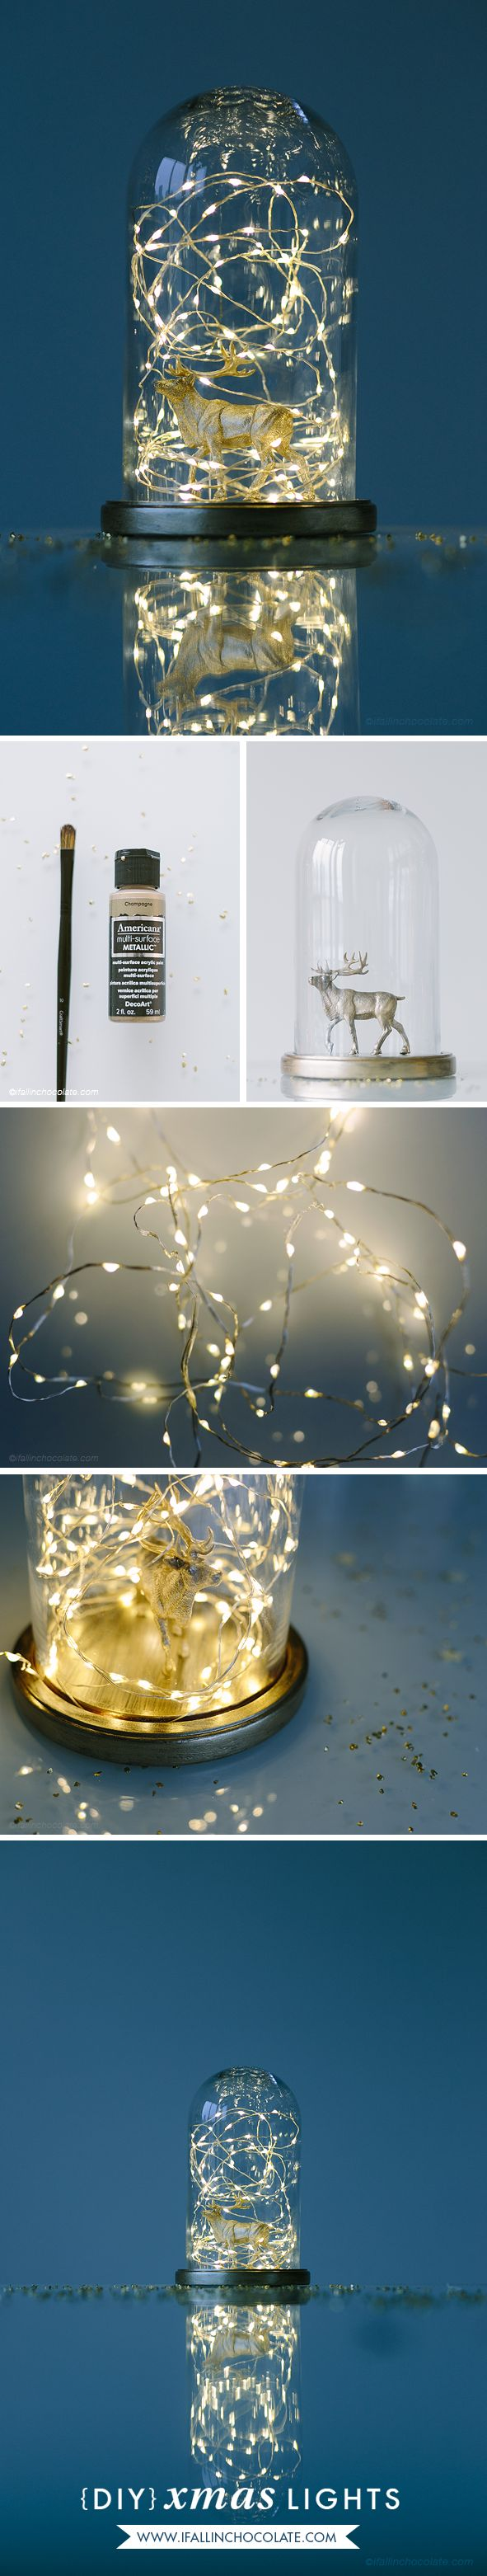 """DIY Xmas Lights (lamp) with a reindeer and a glass case. Home decor idea made by """"I FALL IN CHOCOLATE"""" Tutorial and more info on http://www.ifallinchocolate.com/2014/12/diy-xmas-lights.html Photos by Camilla Anchisi Photography (www.camillaanchisi.com)"""